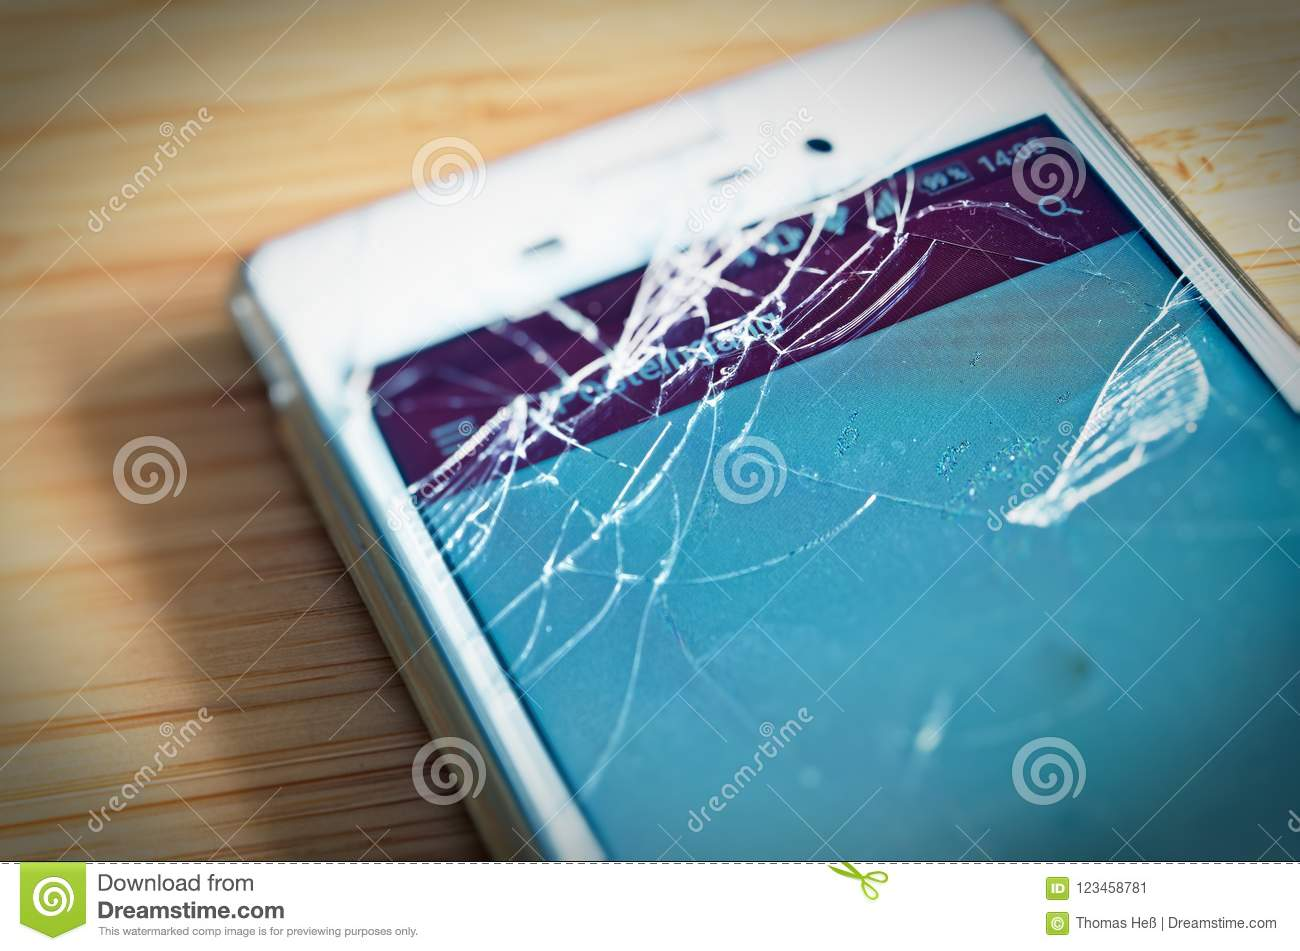 Broken cell phone with display damage and splintered display to symbolize damage to the phone display